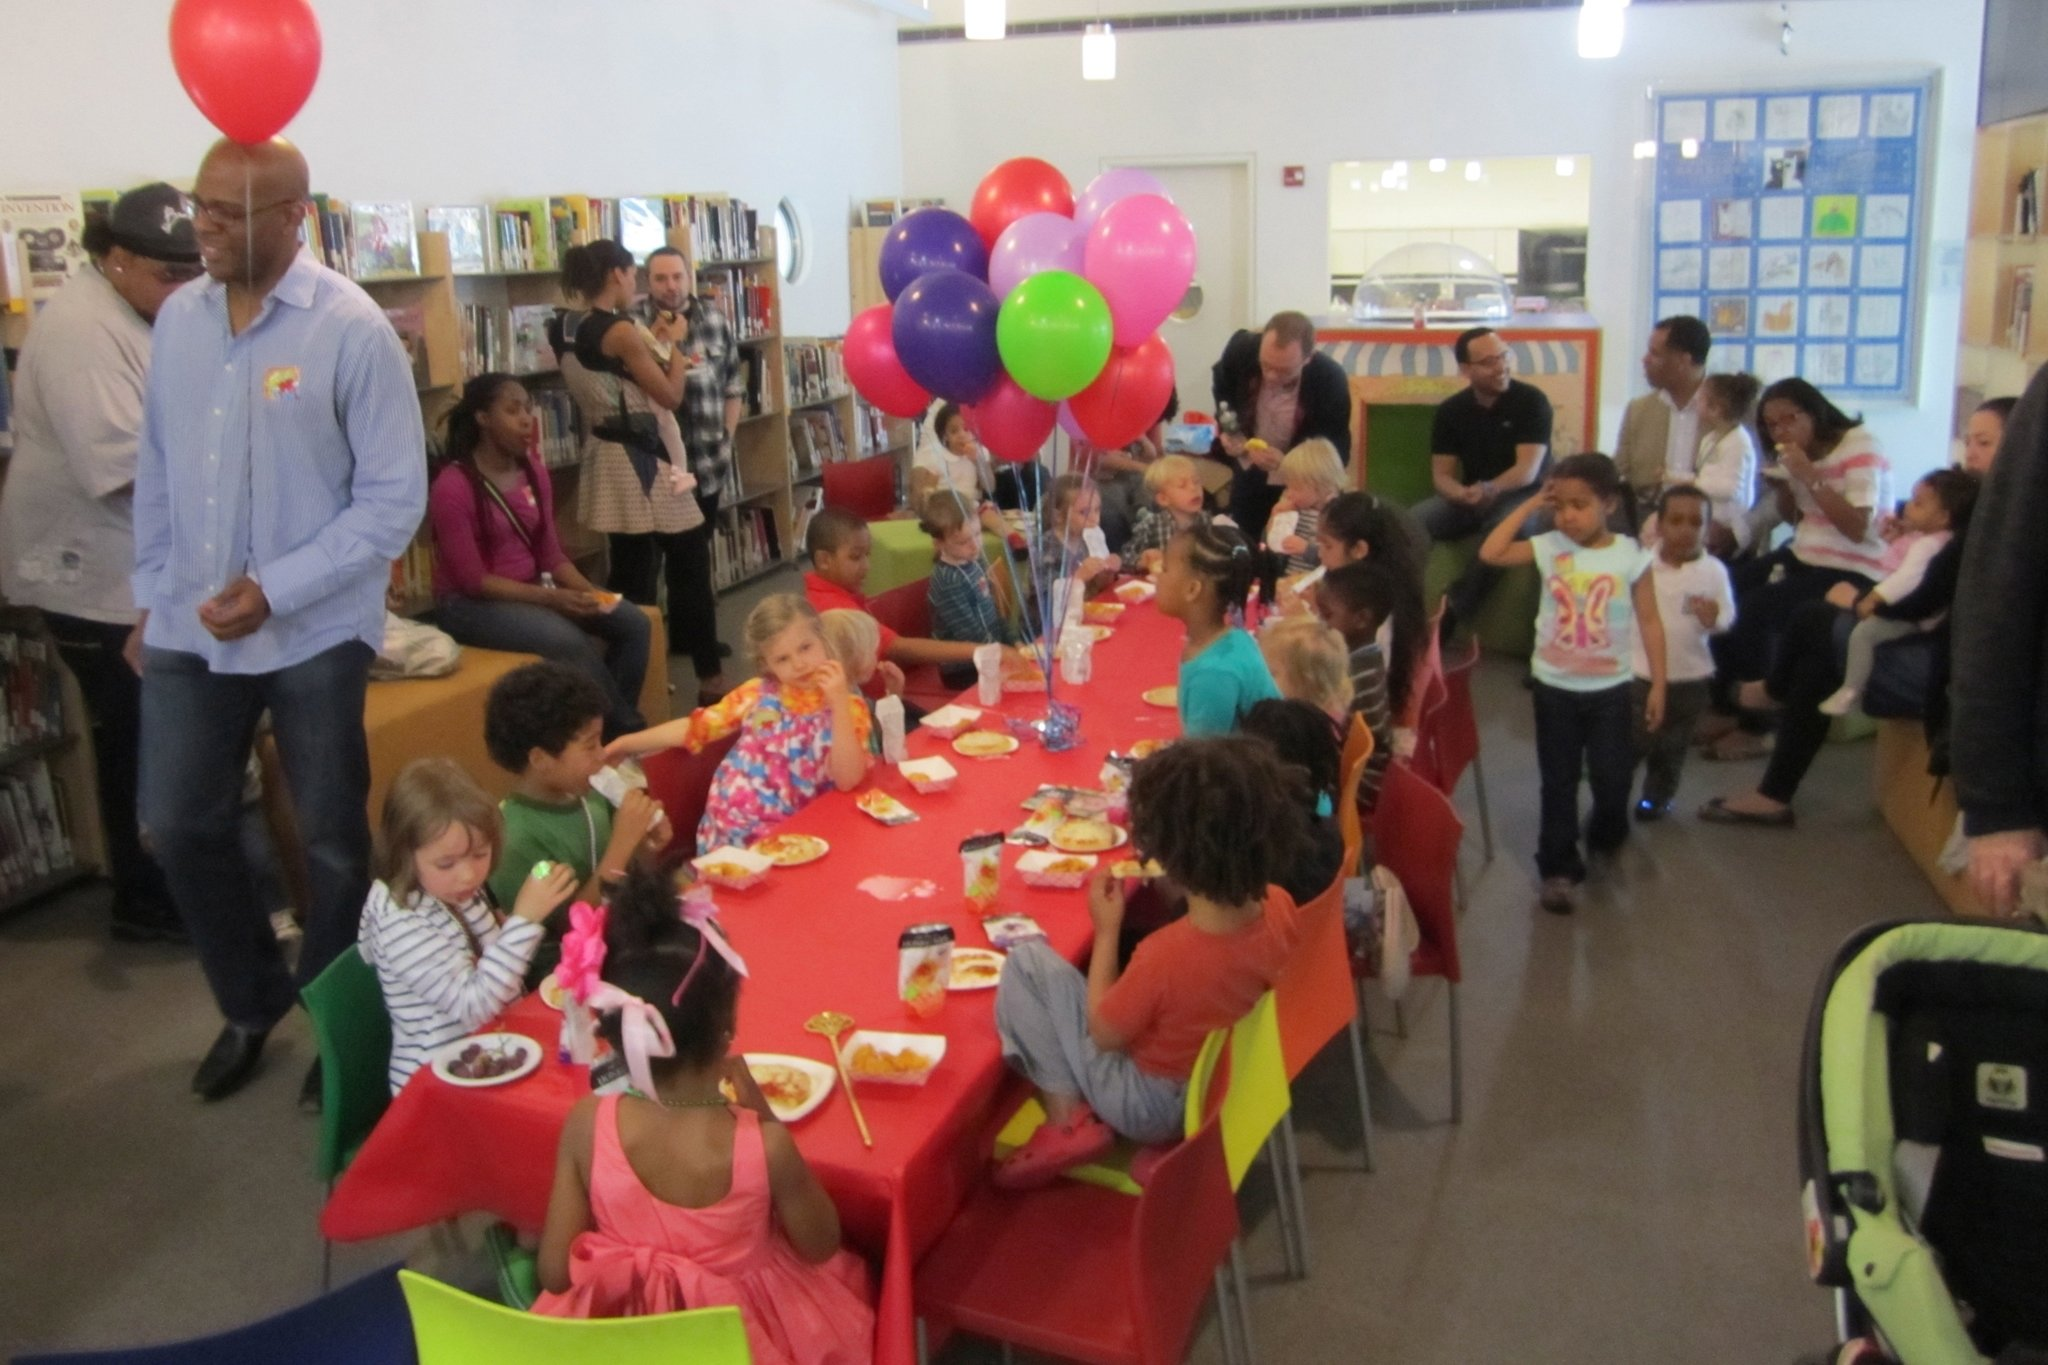 10 Awesome Kids Birthday Party Ideas Nj kid birthday party places nj home design ideas 2020